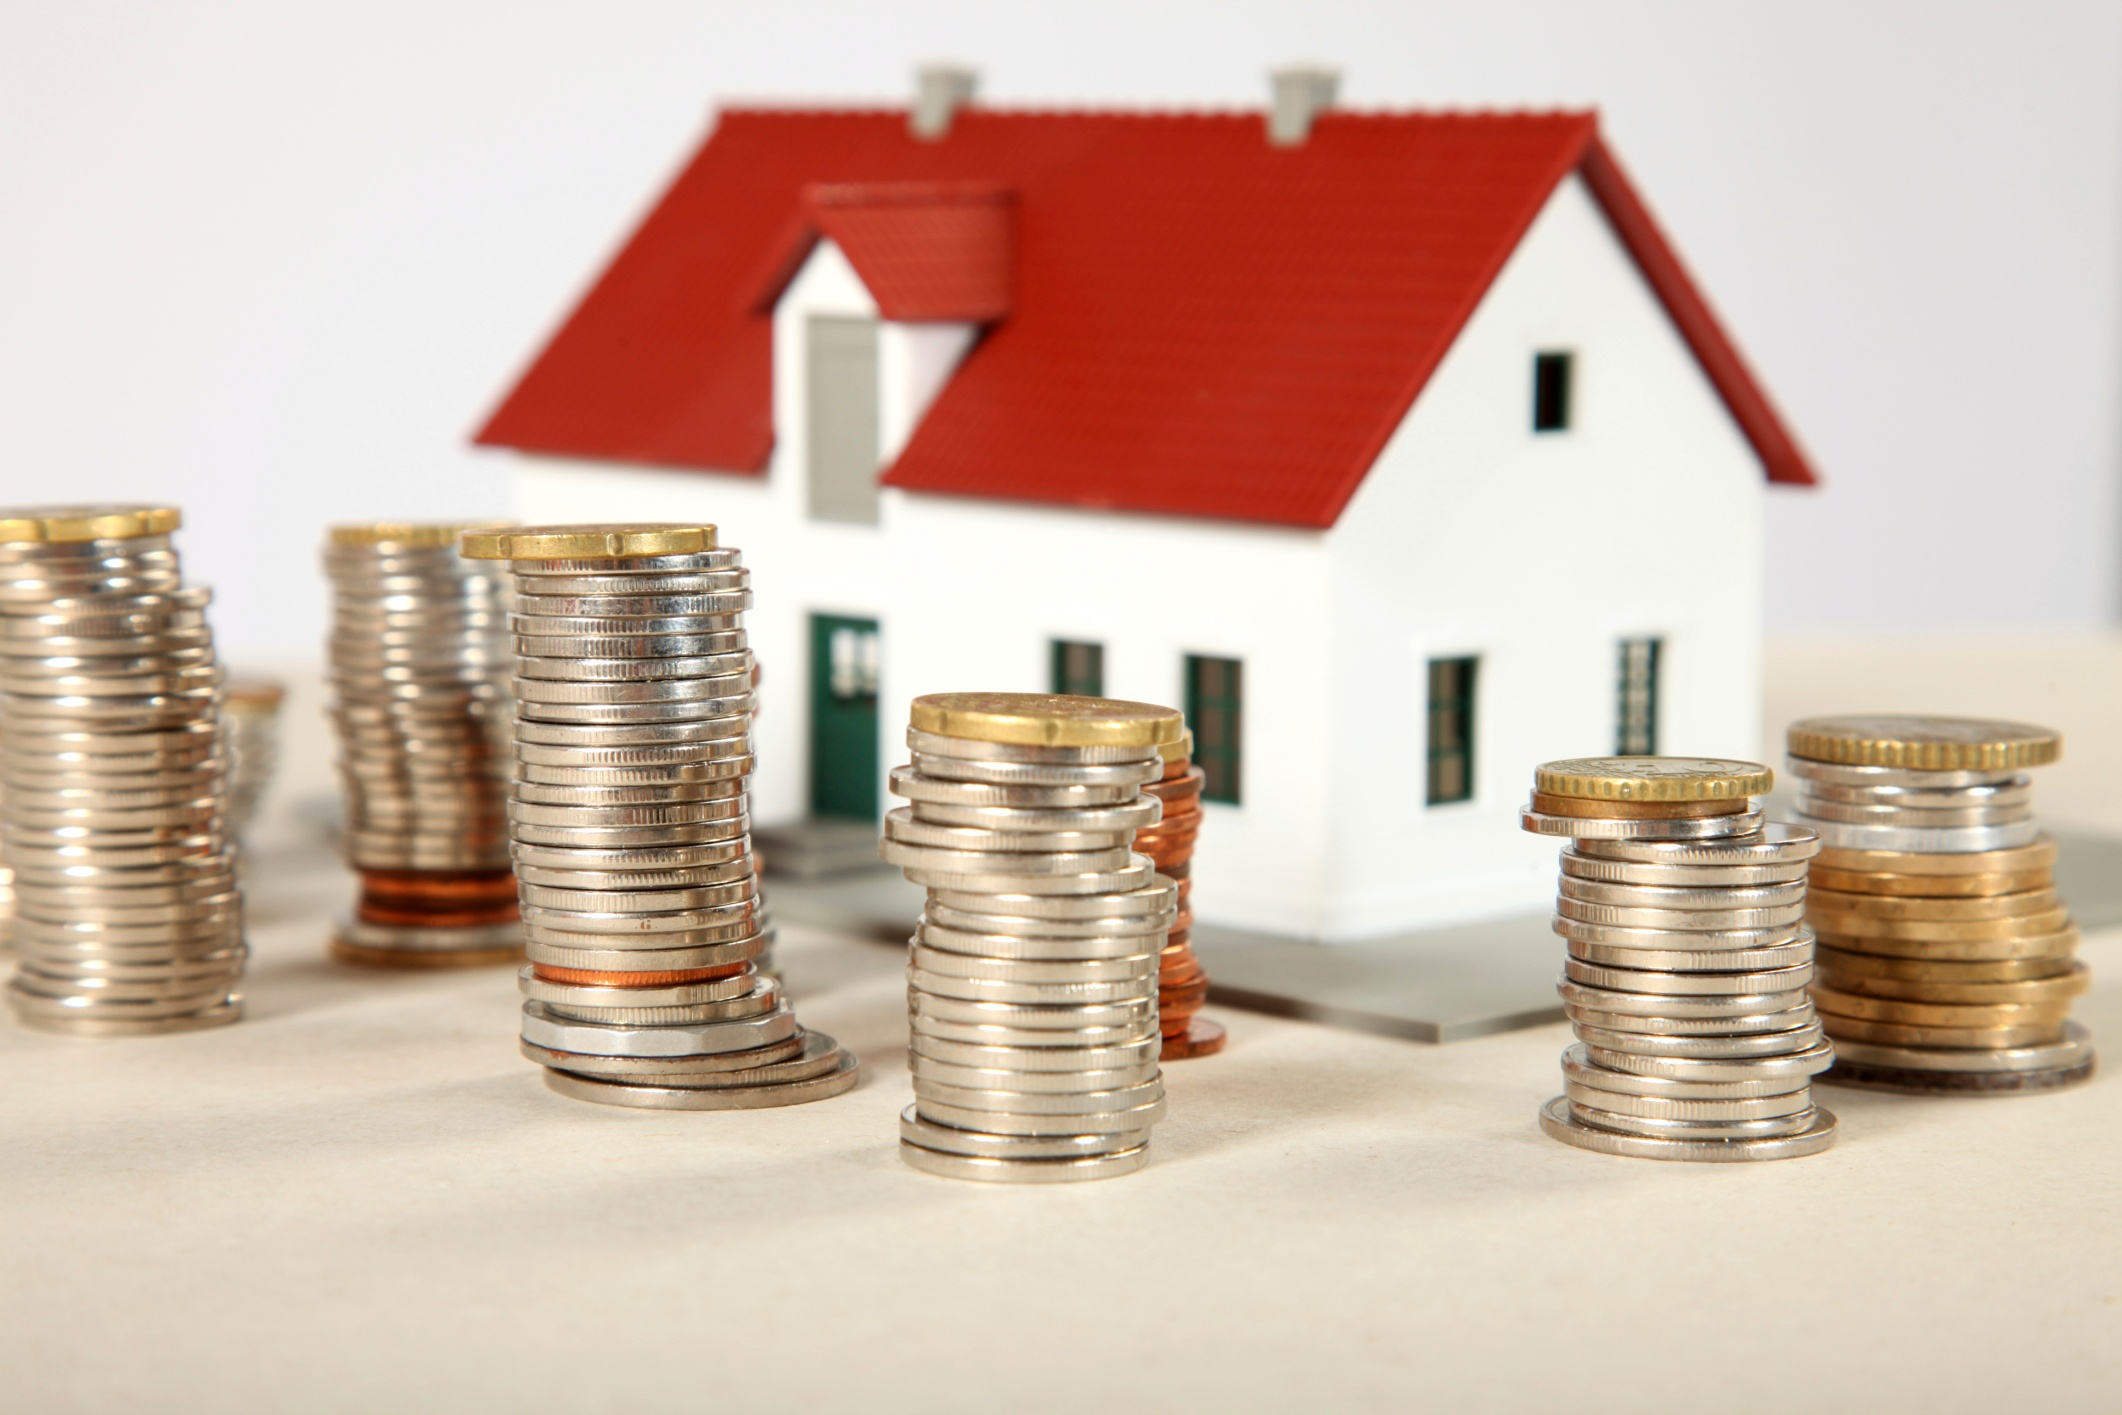 House prices are up and buyers are hesitant